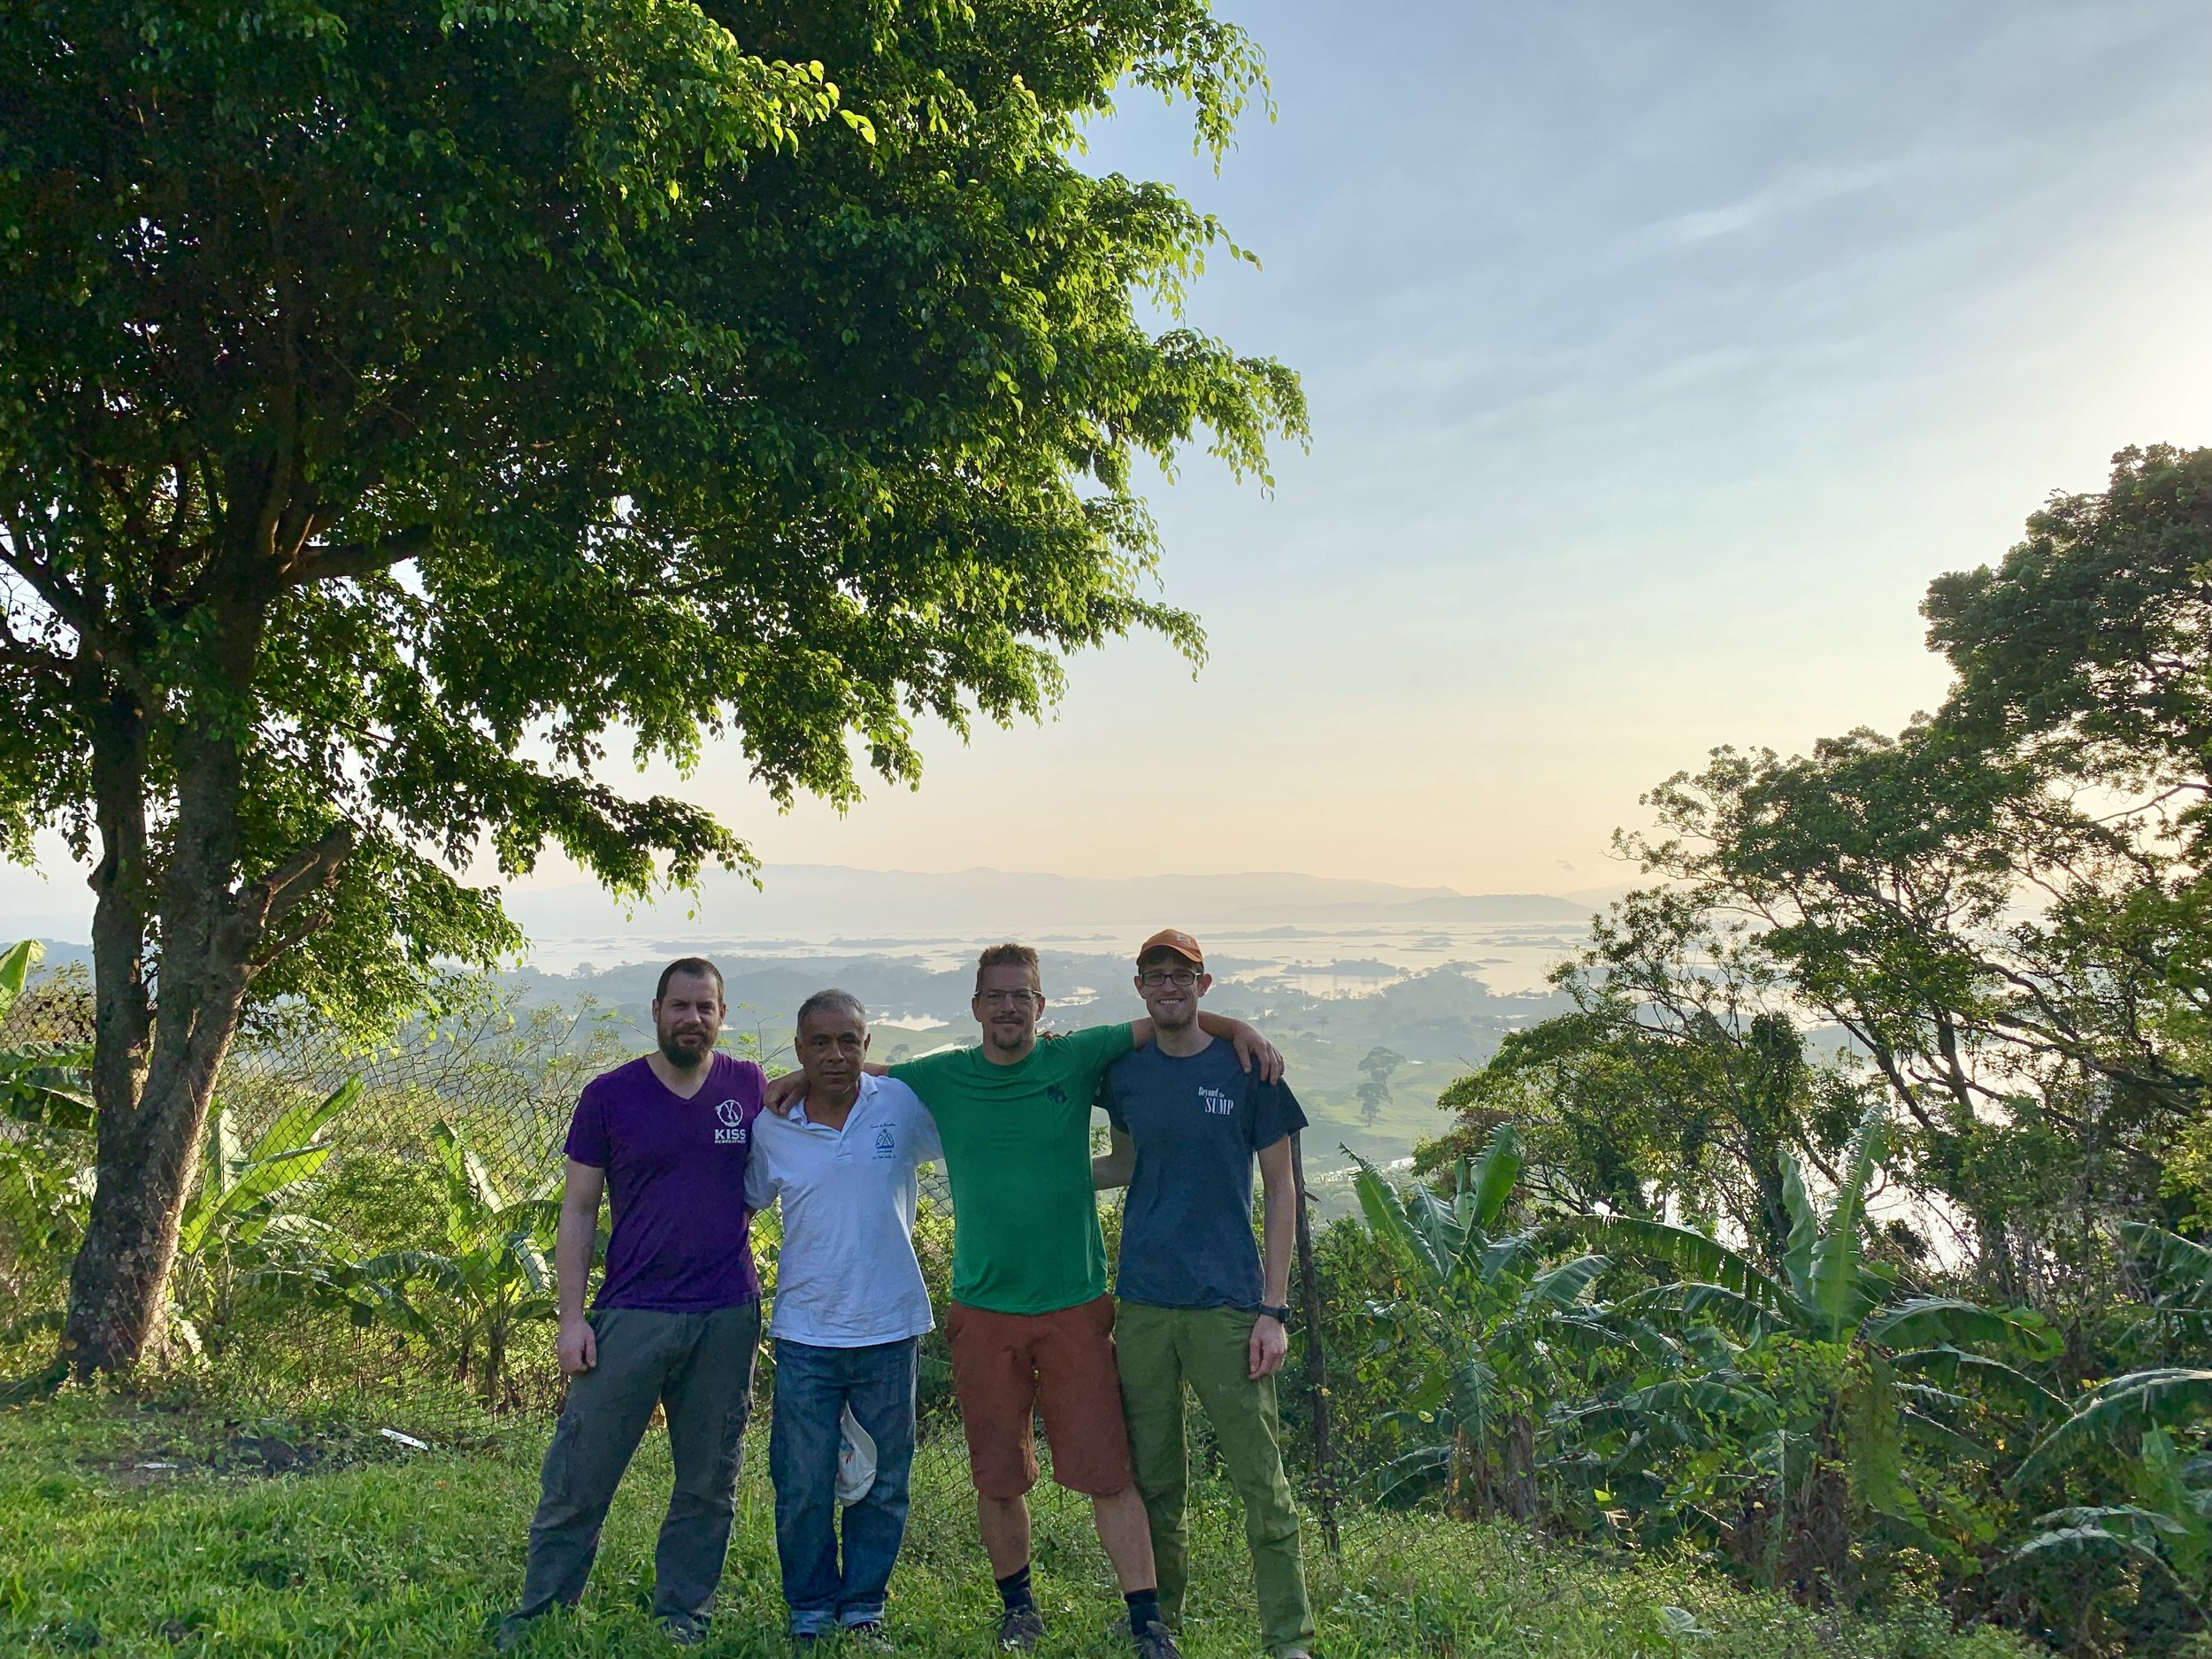 Joe Heinrichs, the local tourism guy, Andreas Klocker, and Teddy Garlock at lake Miguel Alemán.